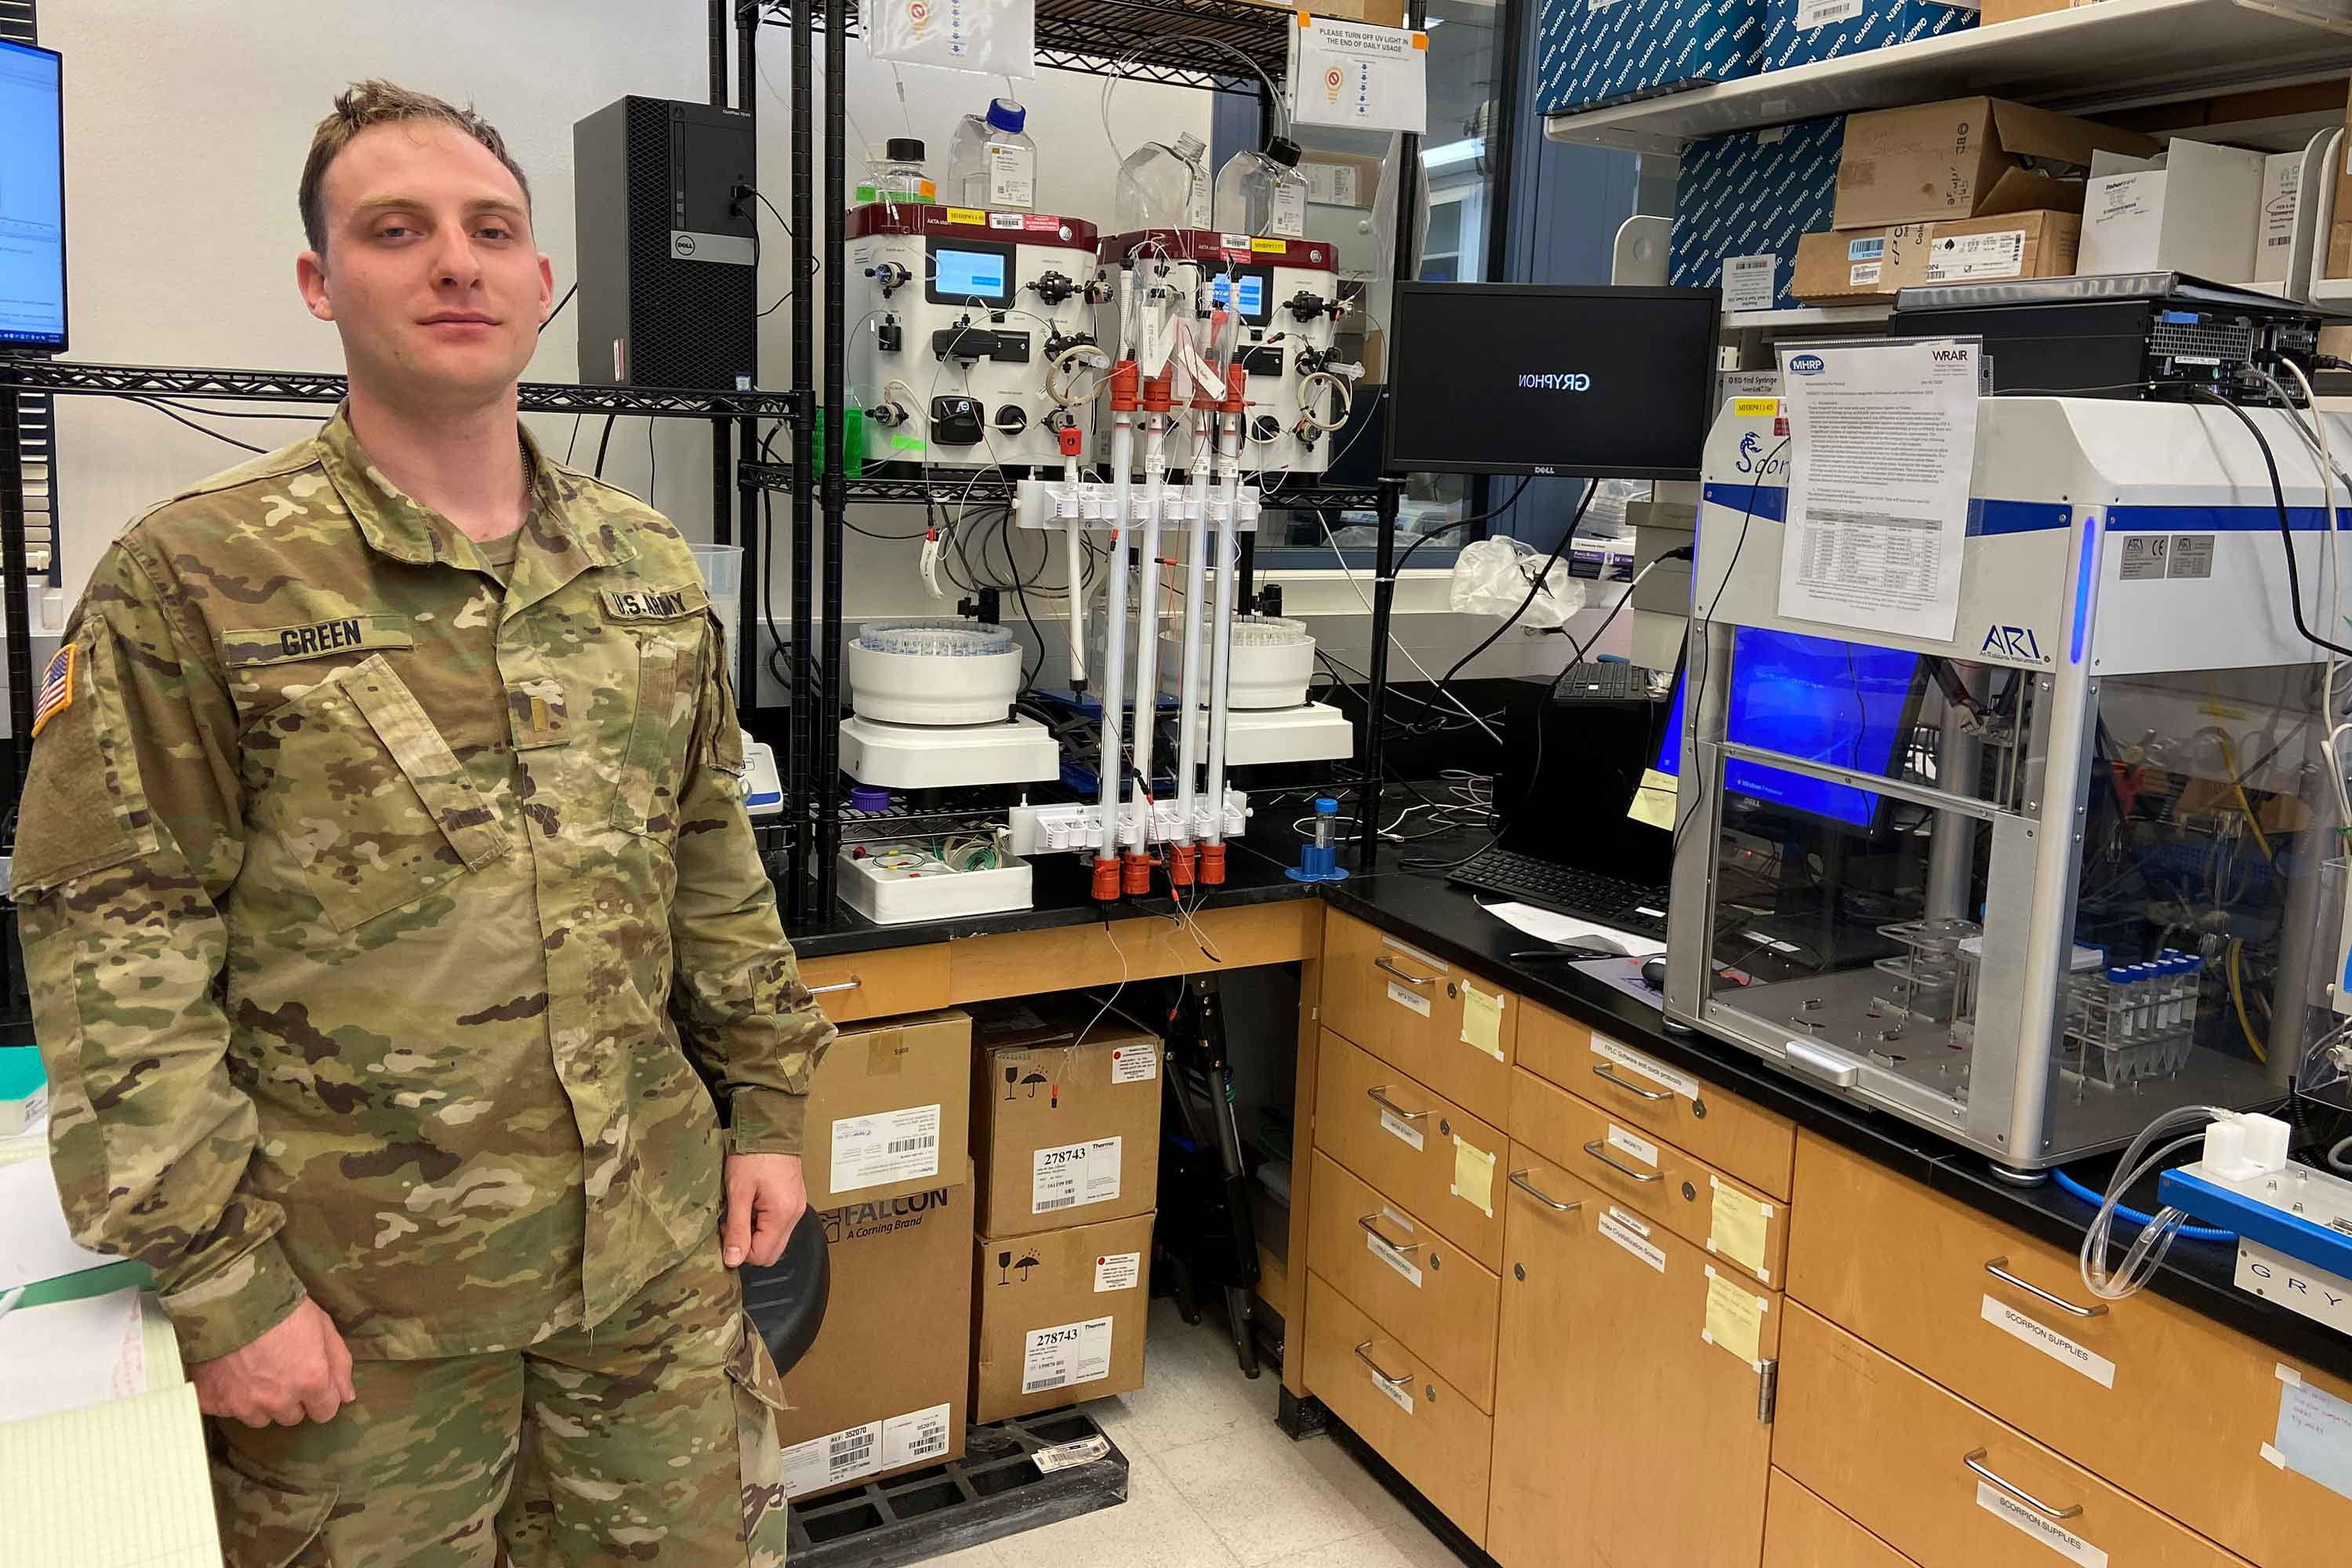 Meet the Army Lieutenant Racing to Develop a Coronavirus Vaccine